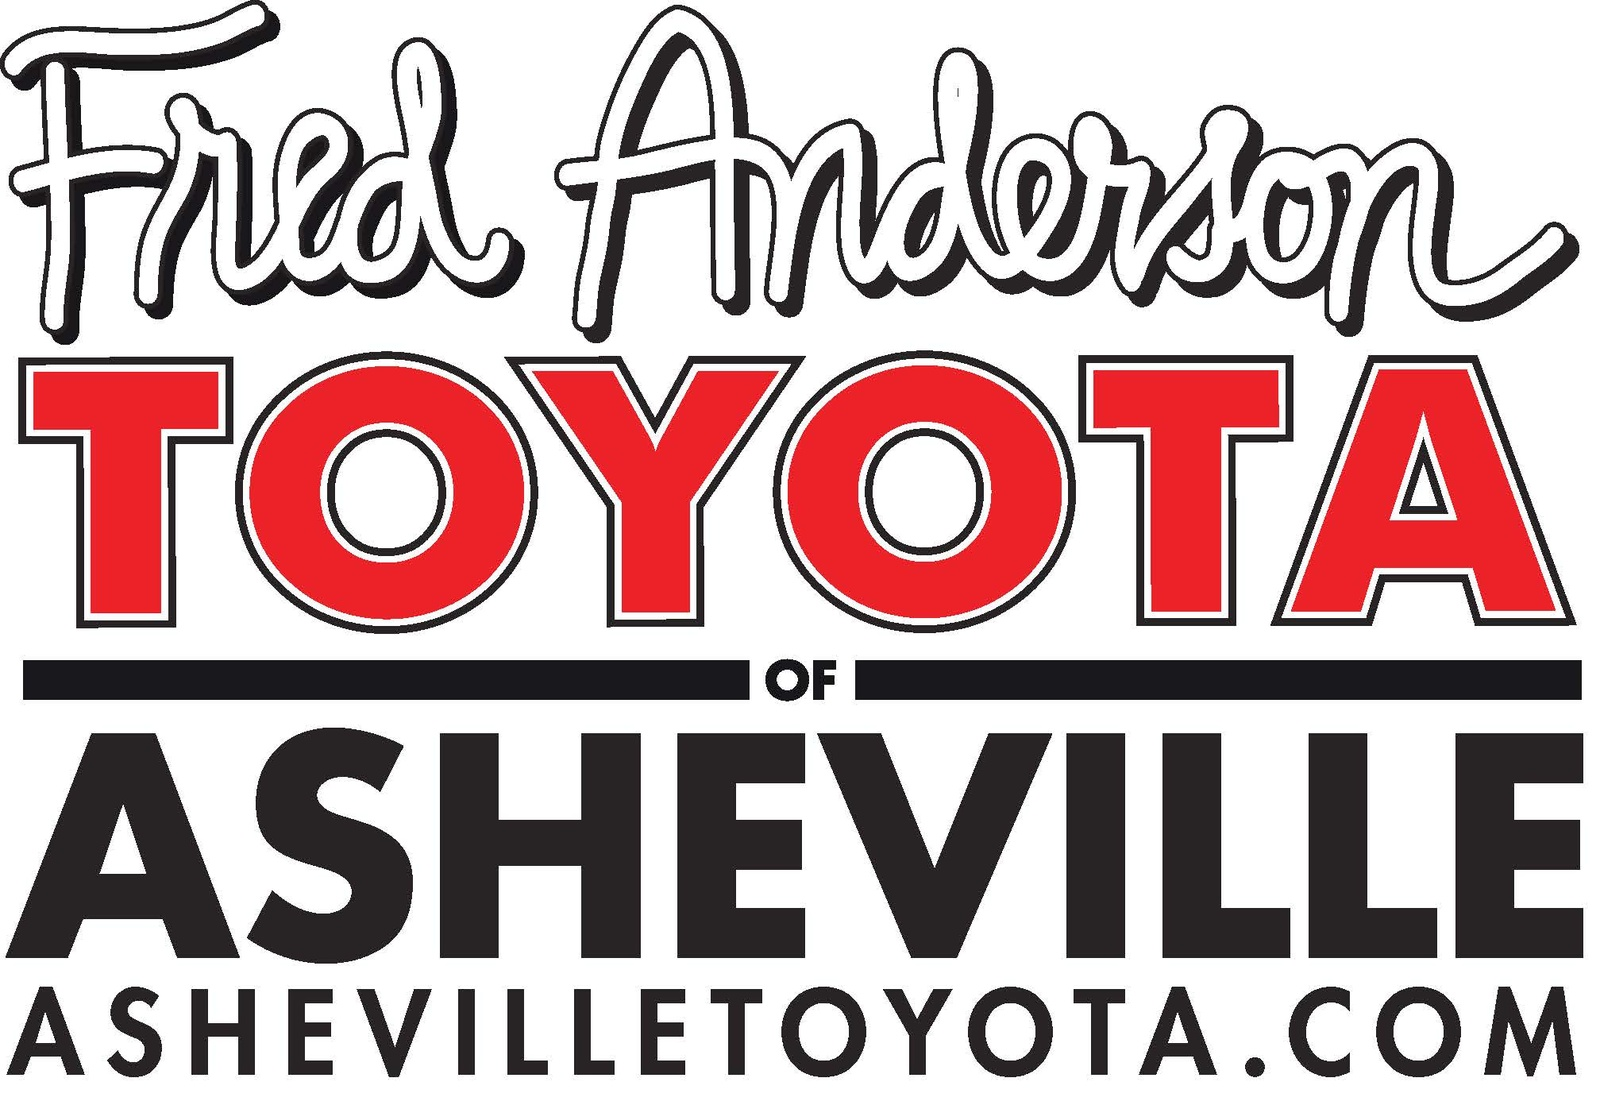 Fred Anderson Toyota Of Asheville   Asheville, NC: Read Consumer Reviews,  Browse Used And New Cars For Sale